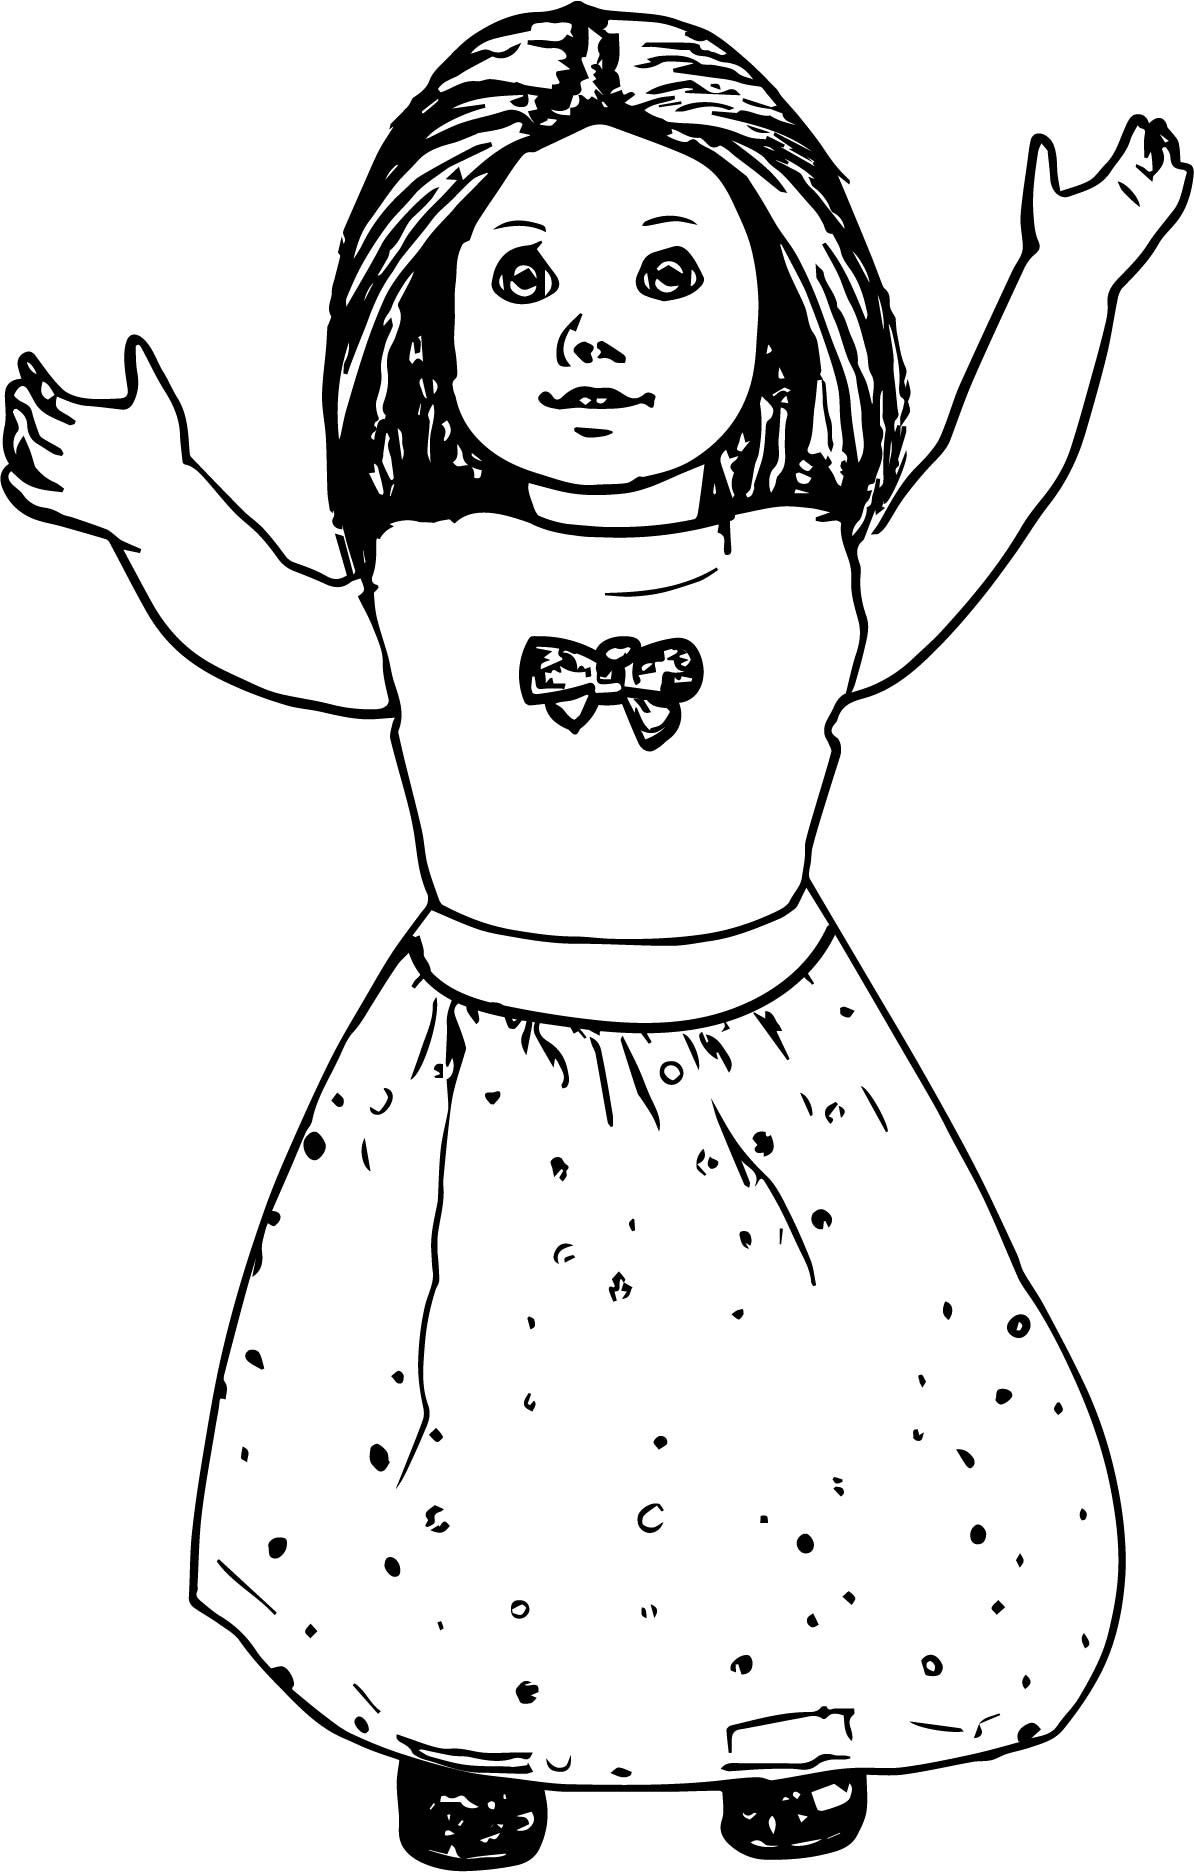 American Girl Doll Coloring Pages  American Girl Doll Toy Coloring Page